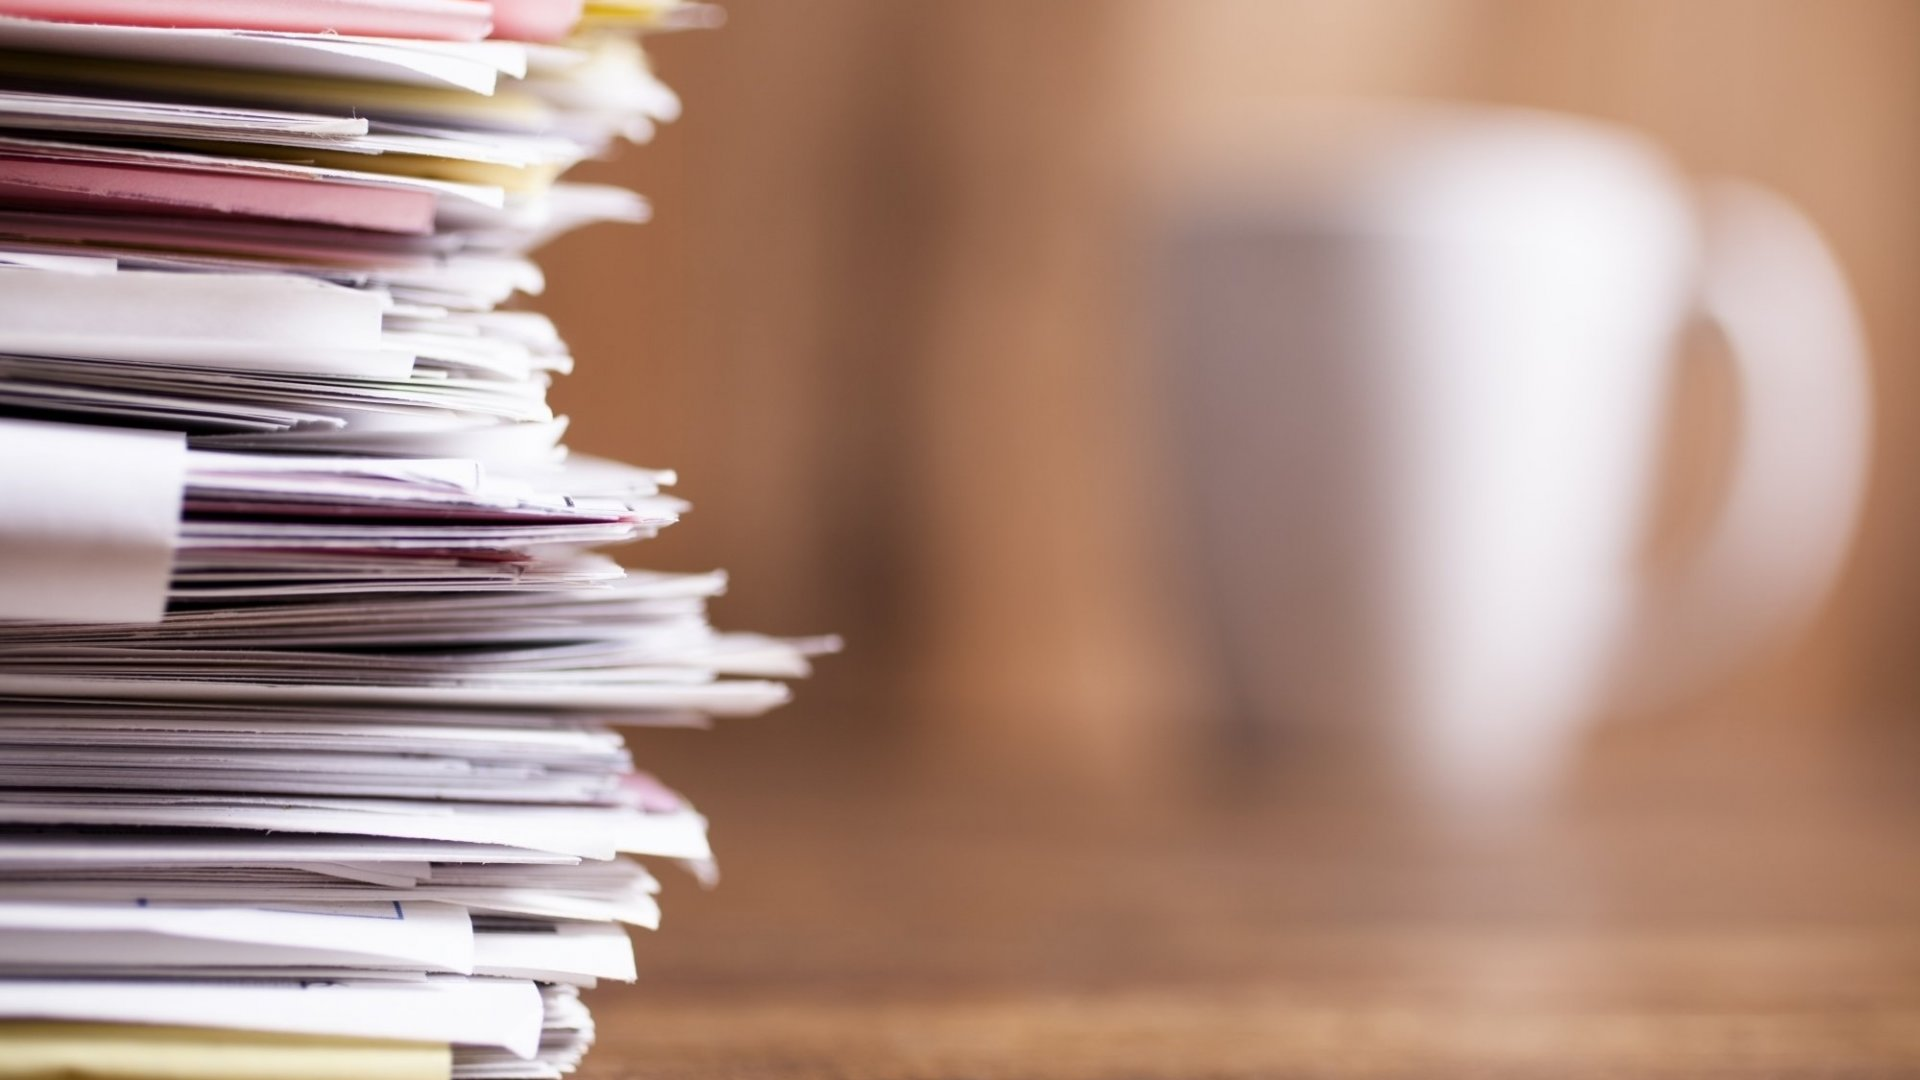 How to Quickly Find High-Level Talent in a Sea of Resumes